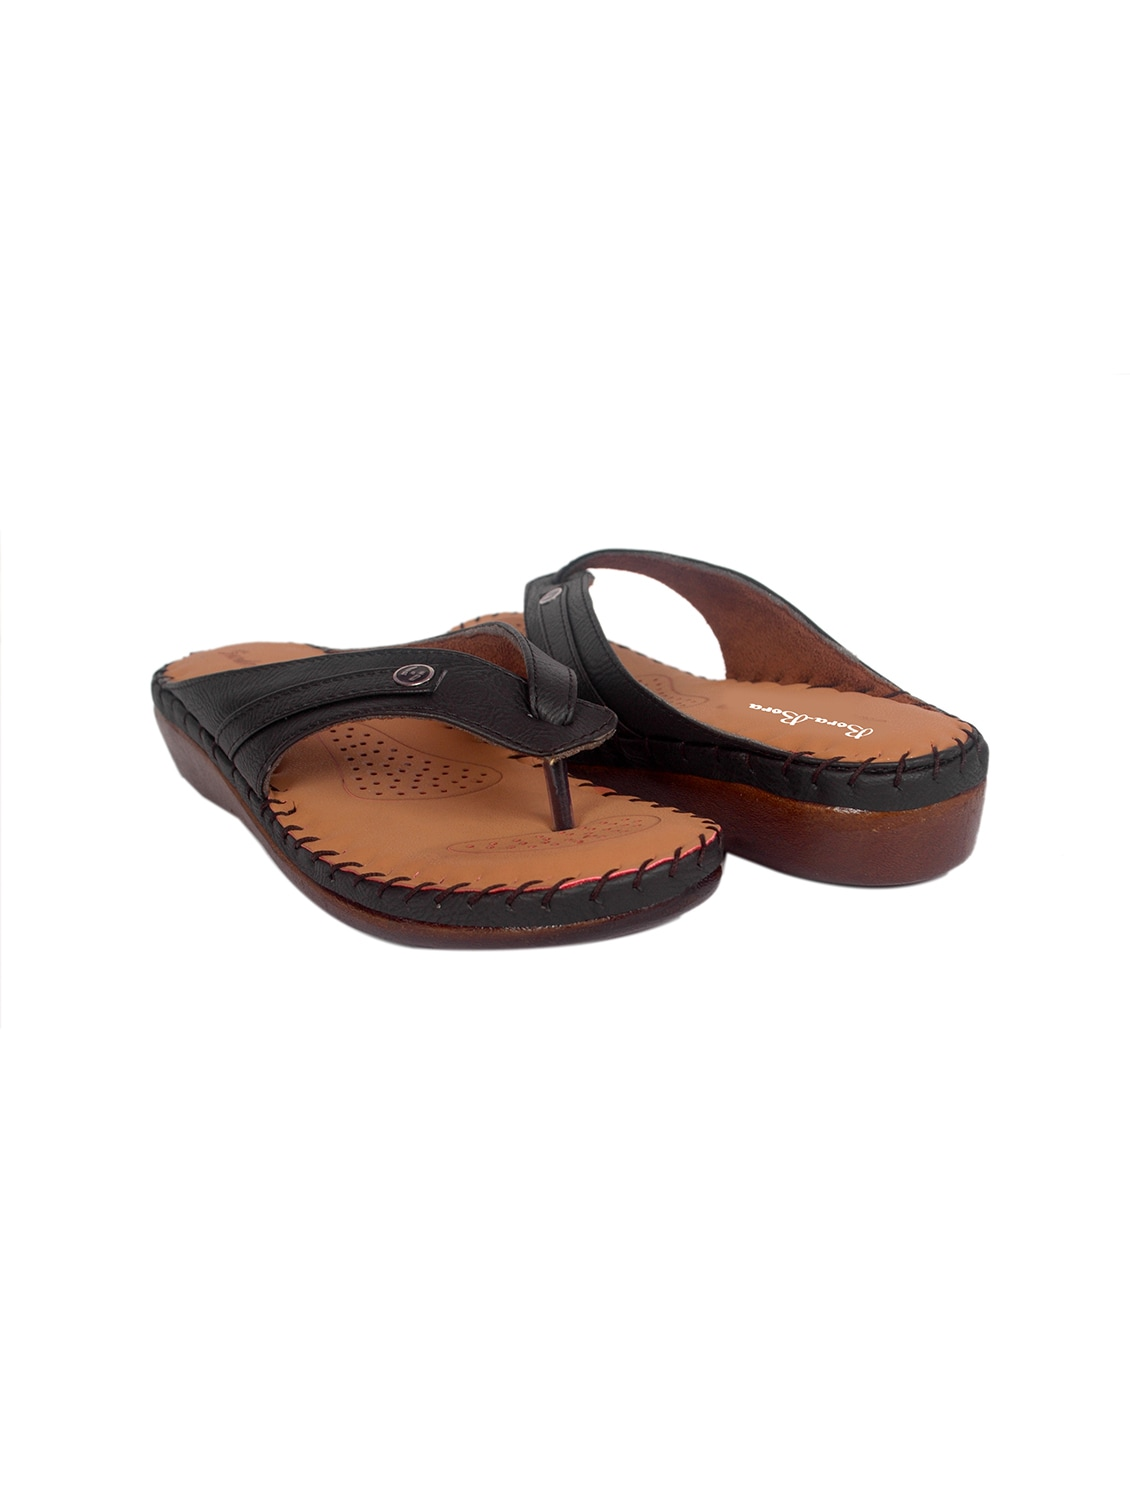 941d07e7b57d Buy Black Faux Leather Slippers by Studio 09 - Online shopping for Flip  Flops in India